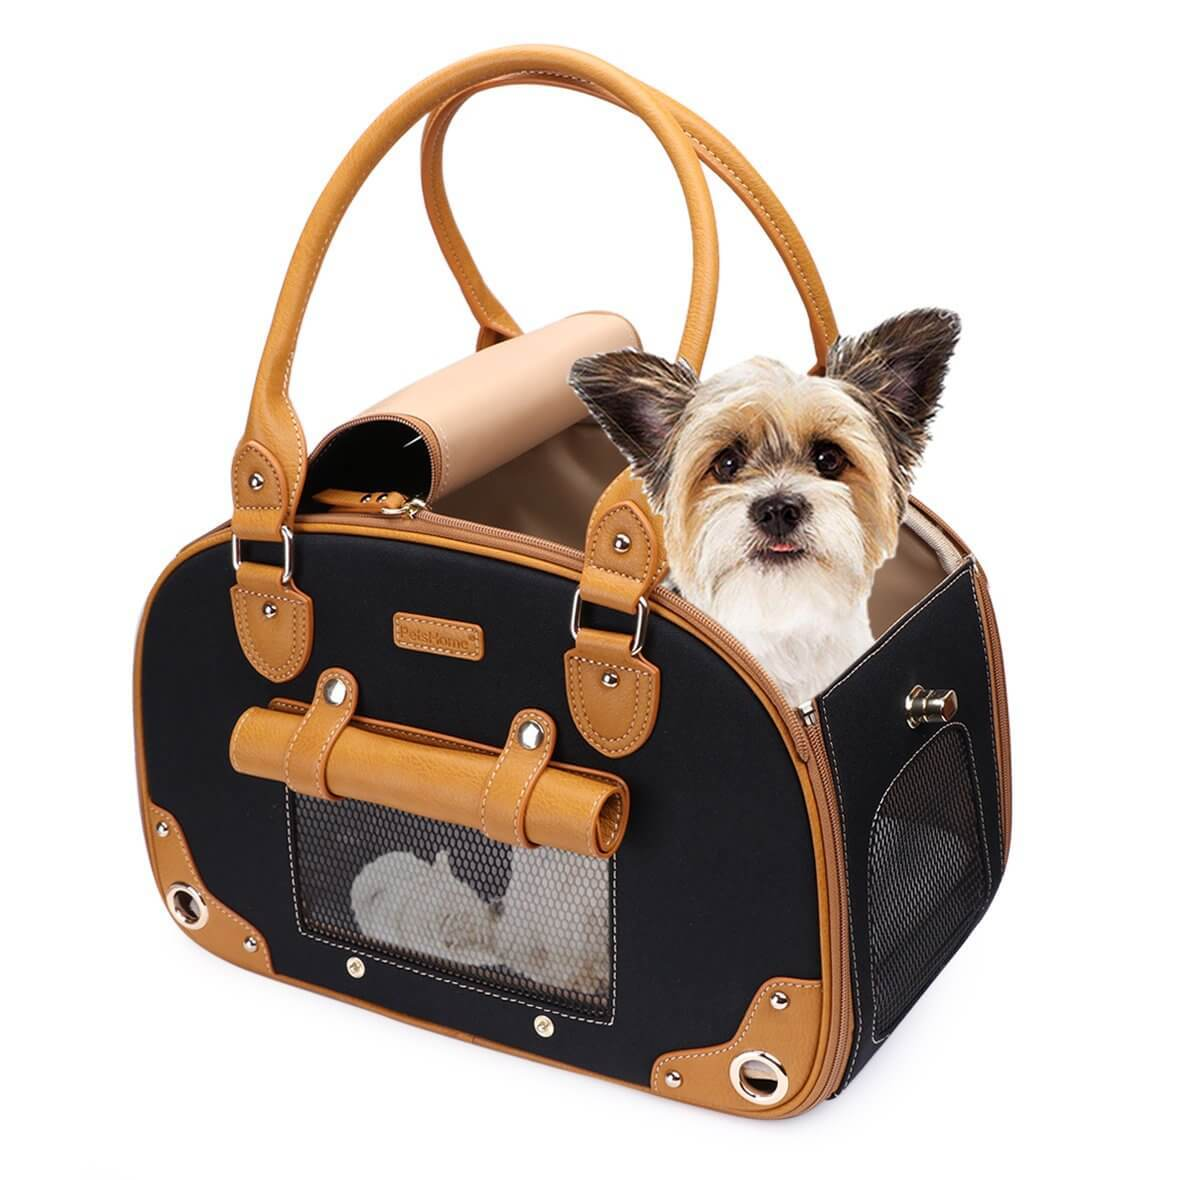 Waterproof Premium Leather Pet Carrier